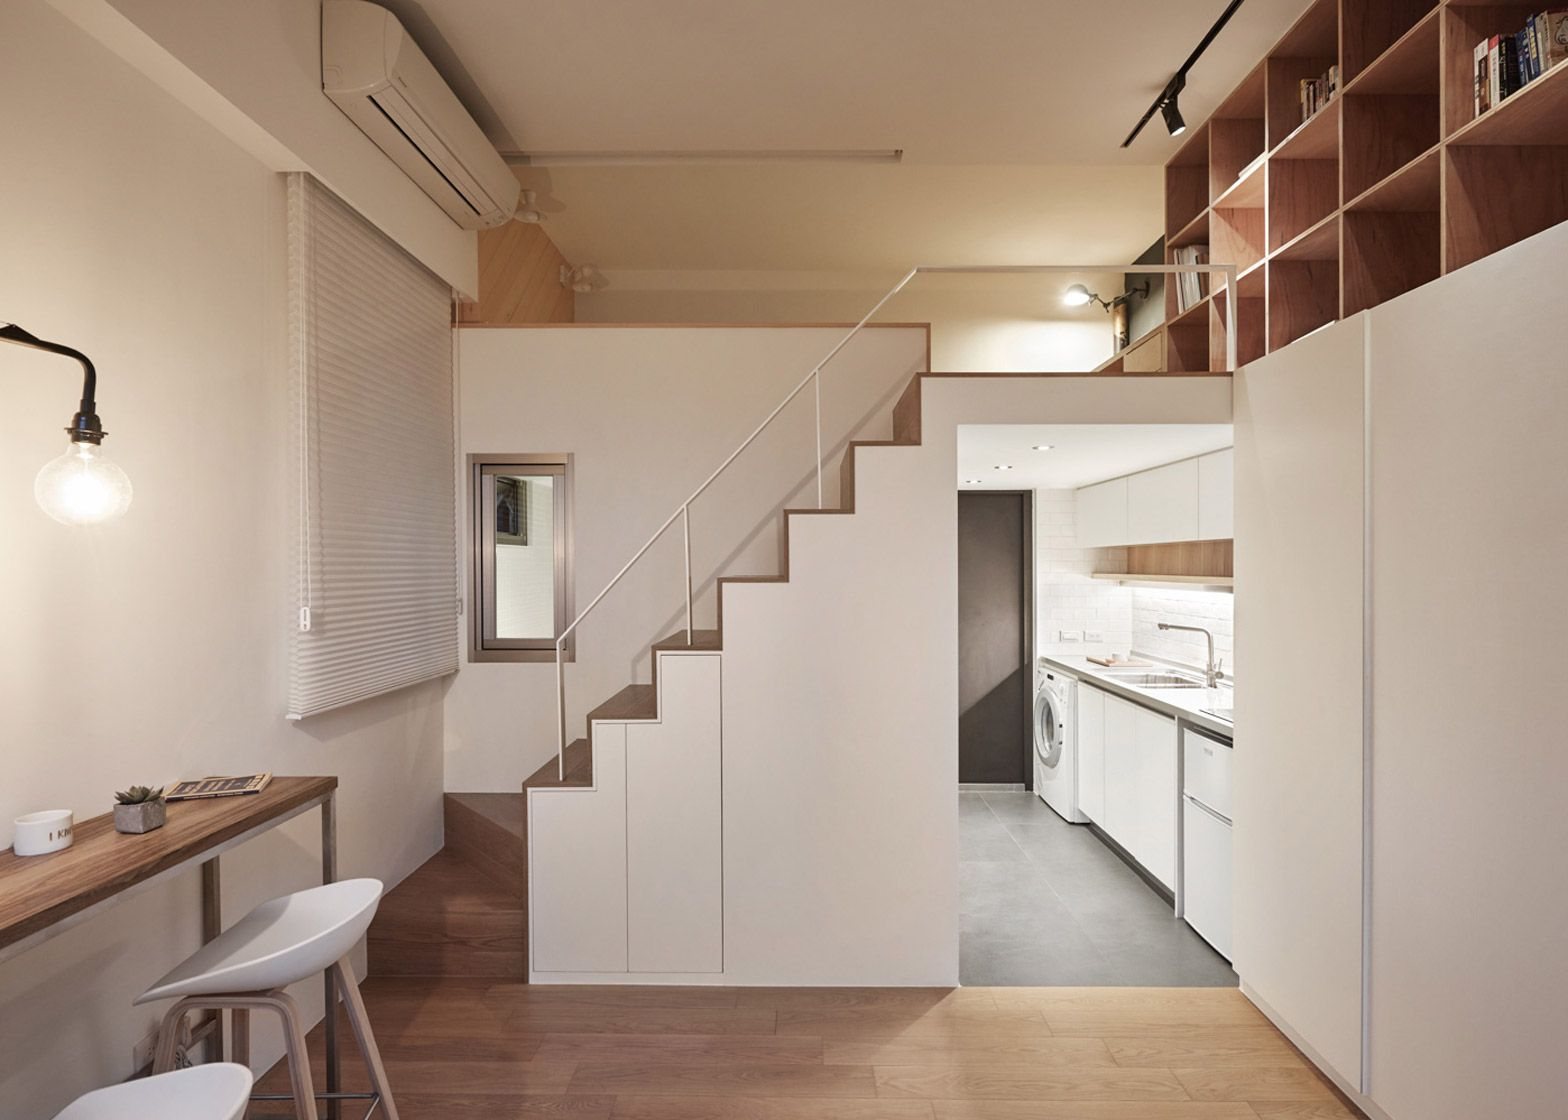 A Little Design creates 22m2 apartment in Taiwan   Flats, Studio and ...